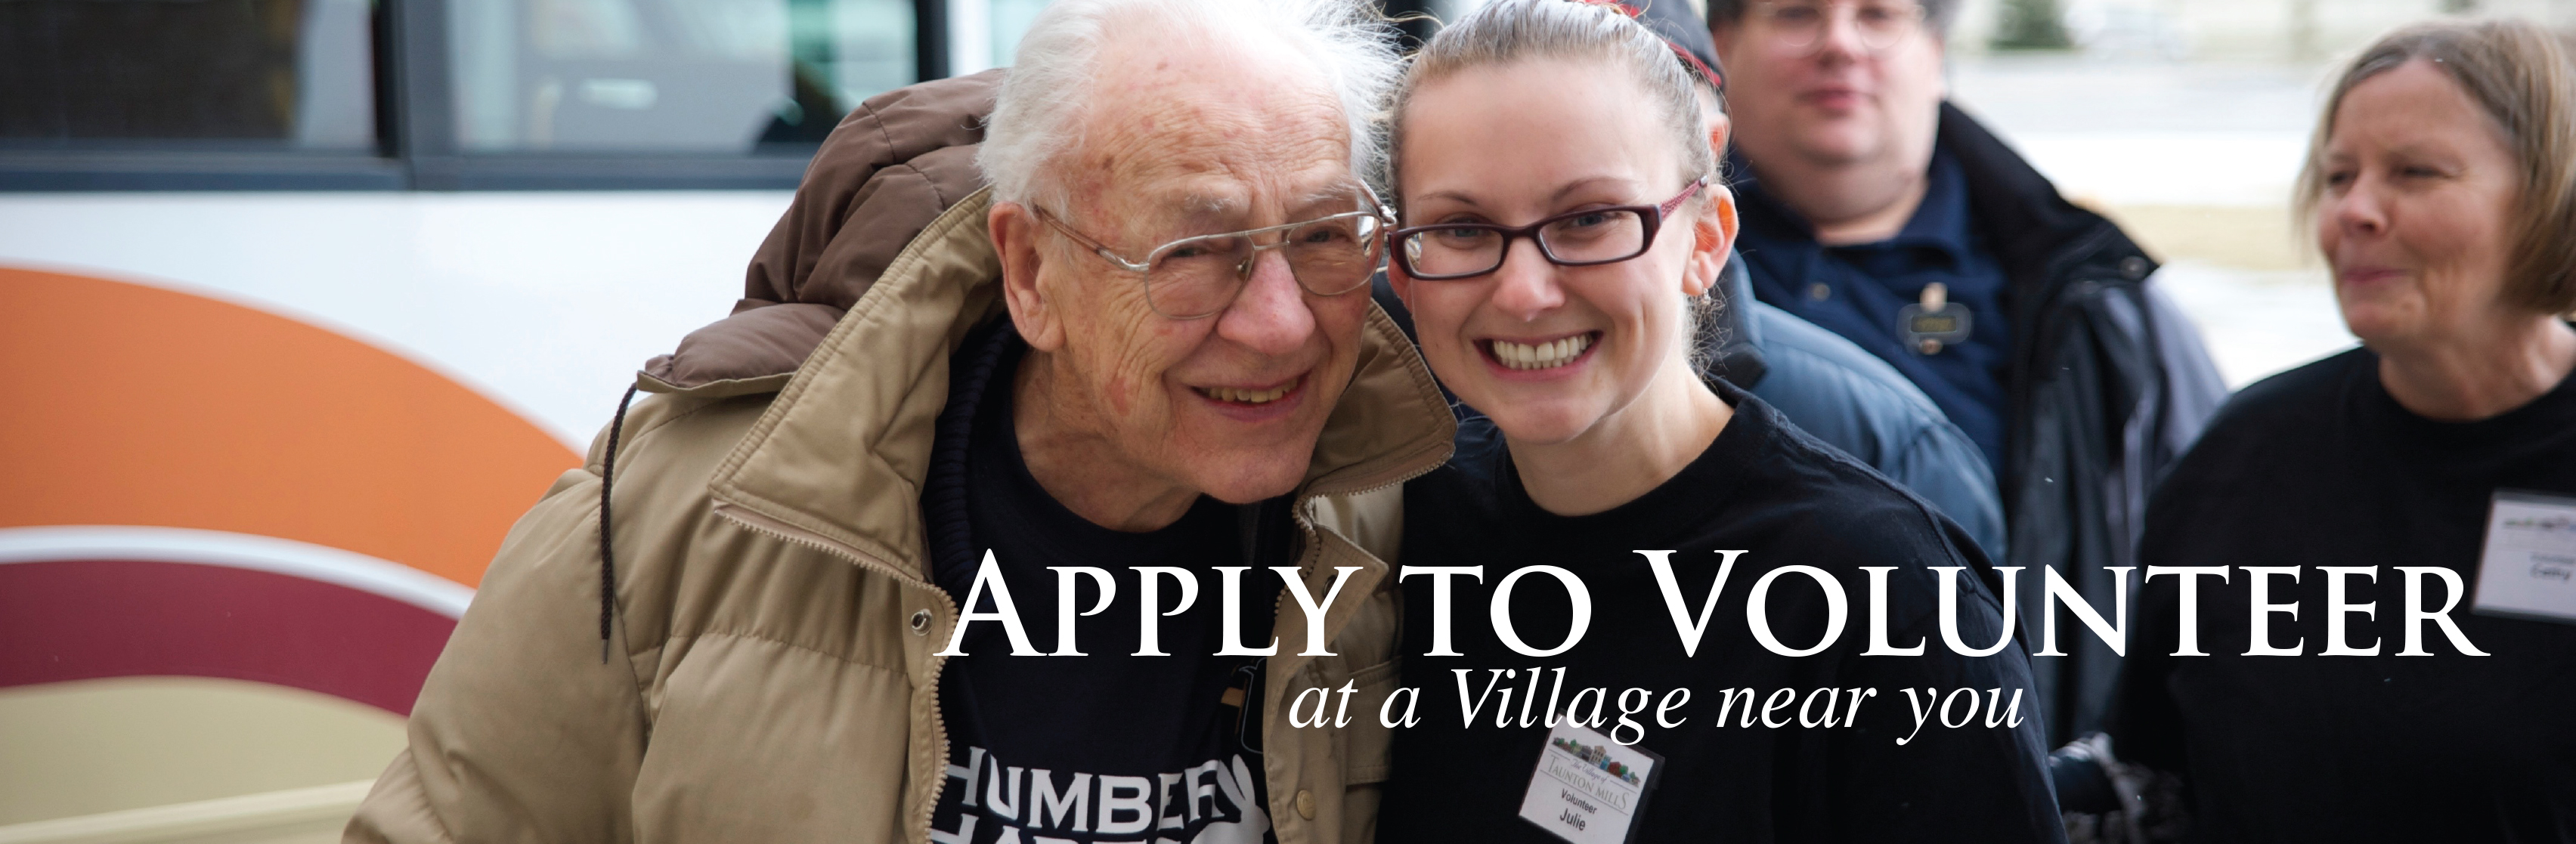 We welcome volunteers in our Villages and have a wide range of opportunities for you to make a difference in the lives of our residents. Discover the joy and fulfillment of volunteering with seniors.